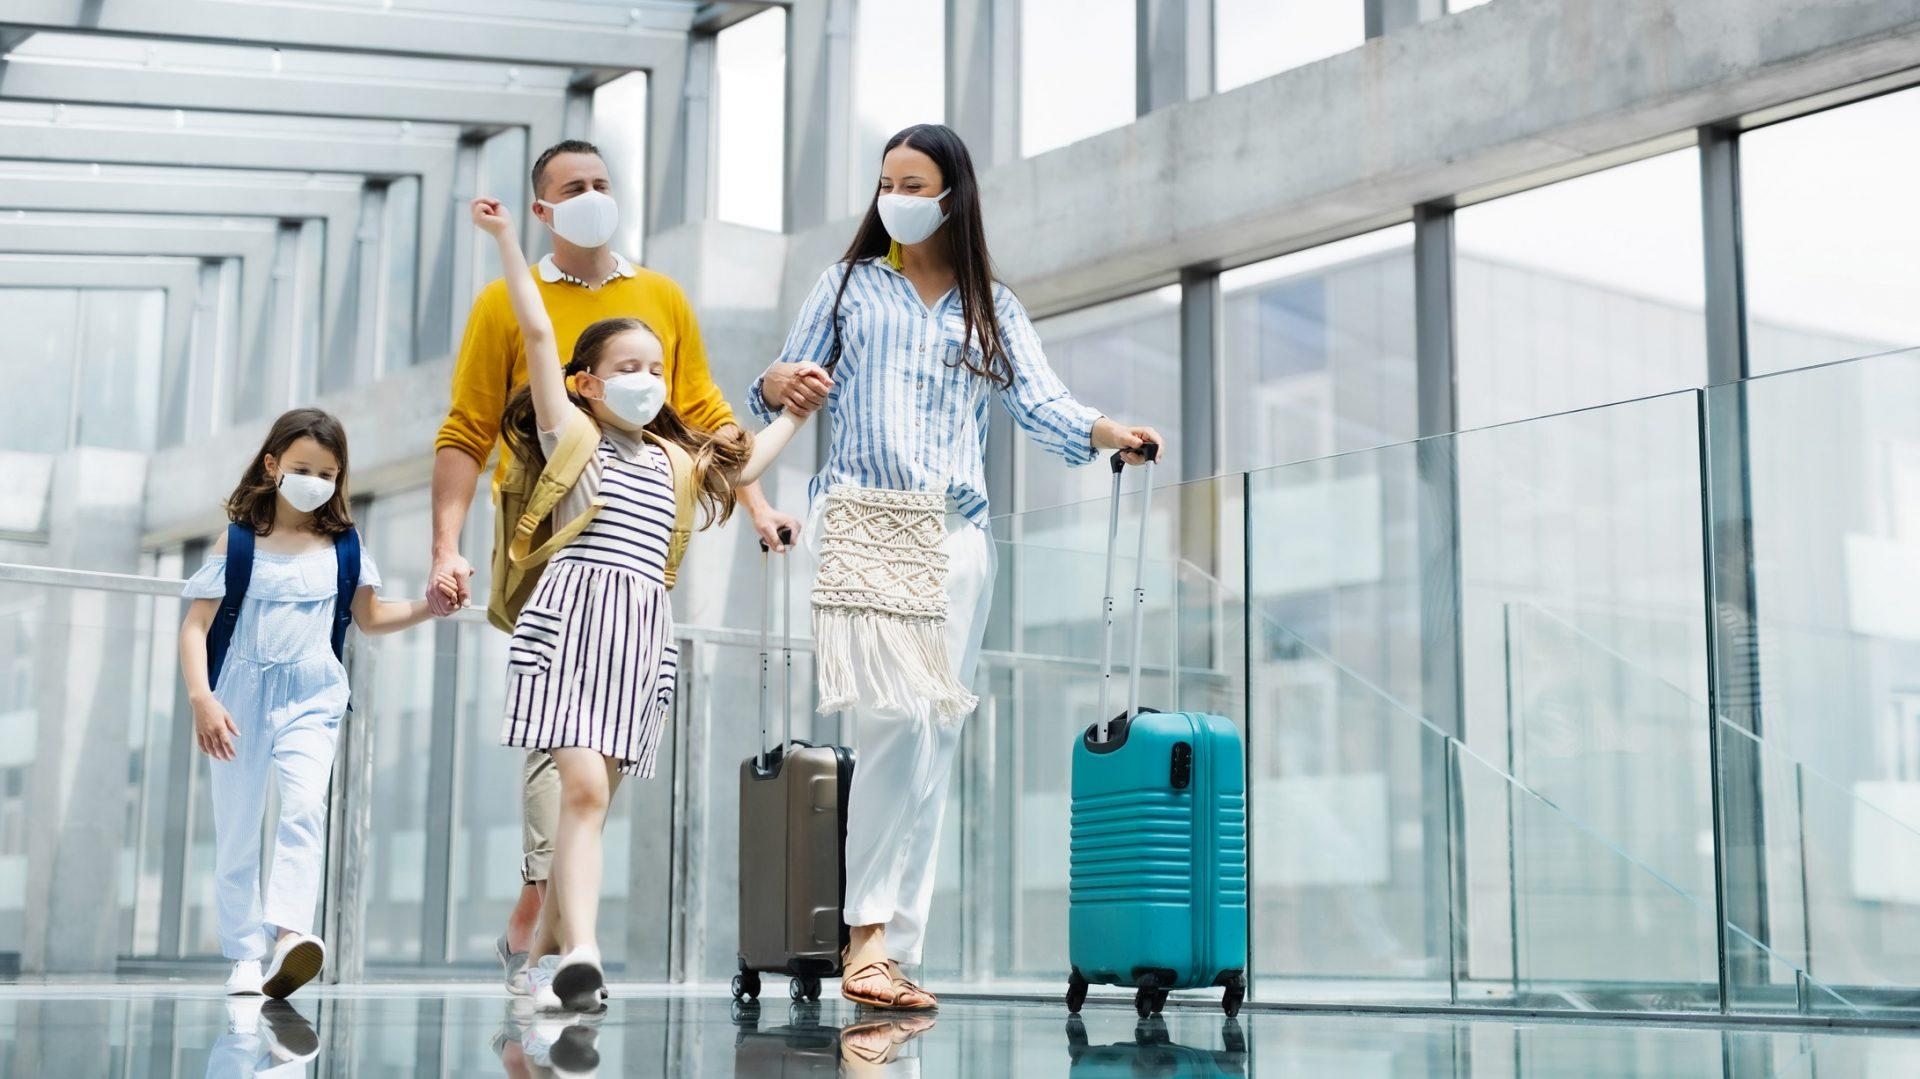 New Engagement Labs Data Ranks Top Brands Across Categories, with Travel Leading WOM Growth as US Looks Forward to a Post-Pandemic Future